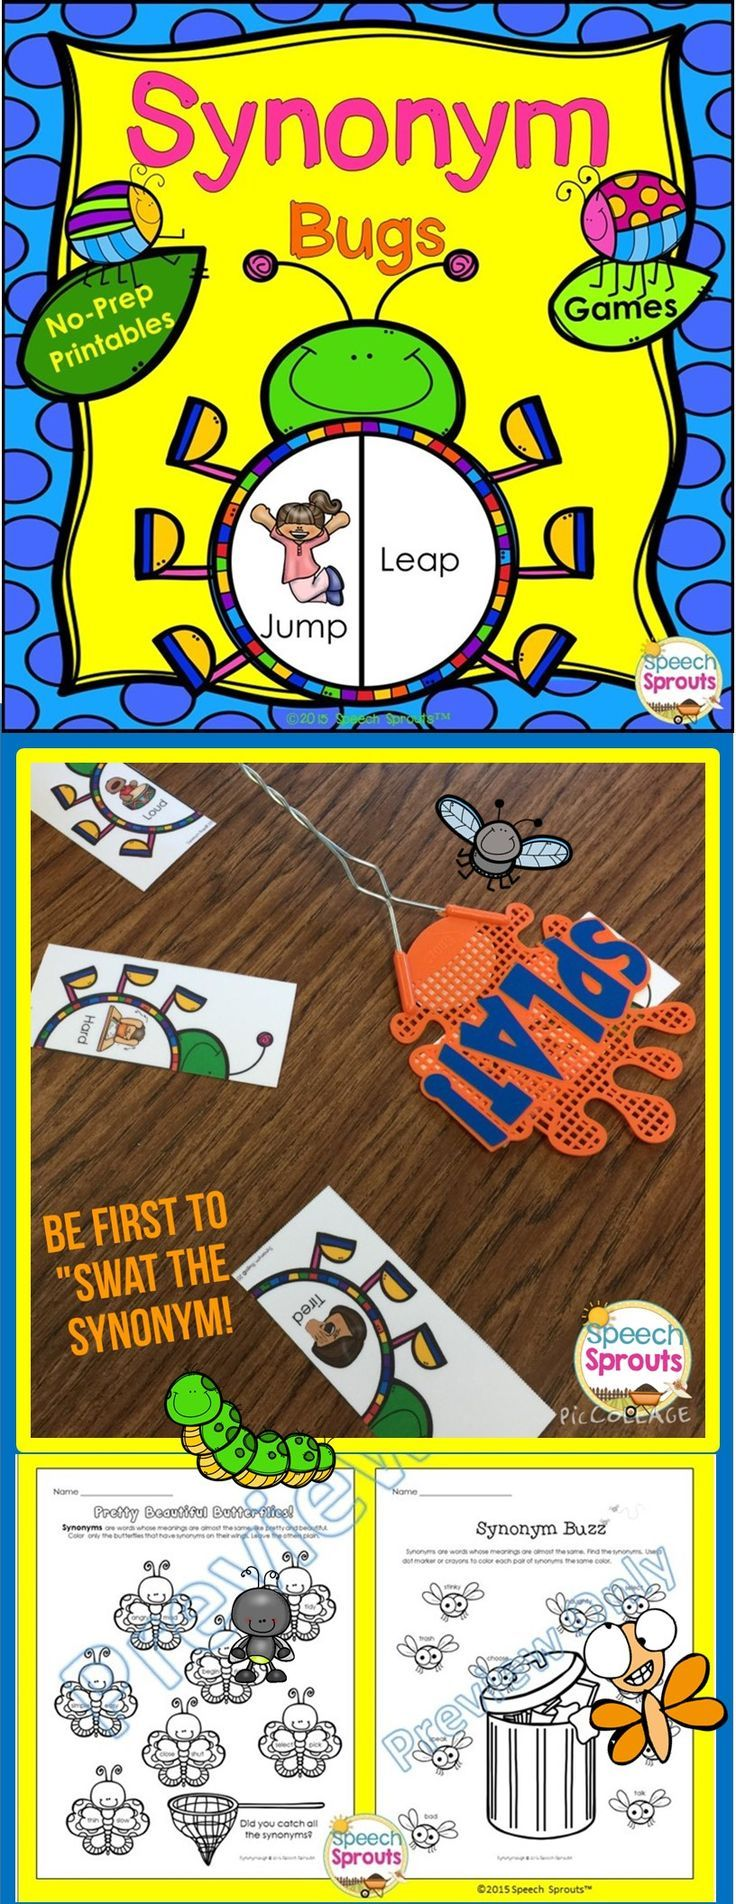 $ Synonym Bugs: Tons of buggy synonym practice with 15 no-prep interactive printables and 2 adorable card games! #speechsprouts